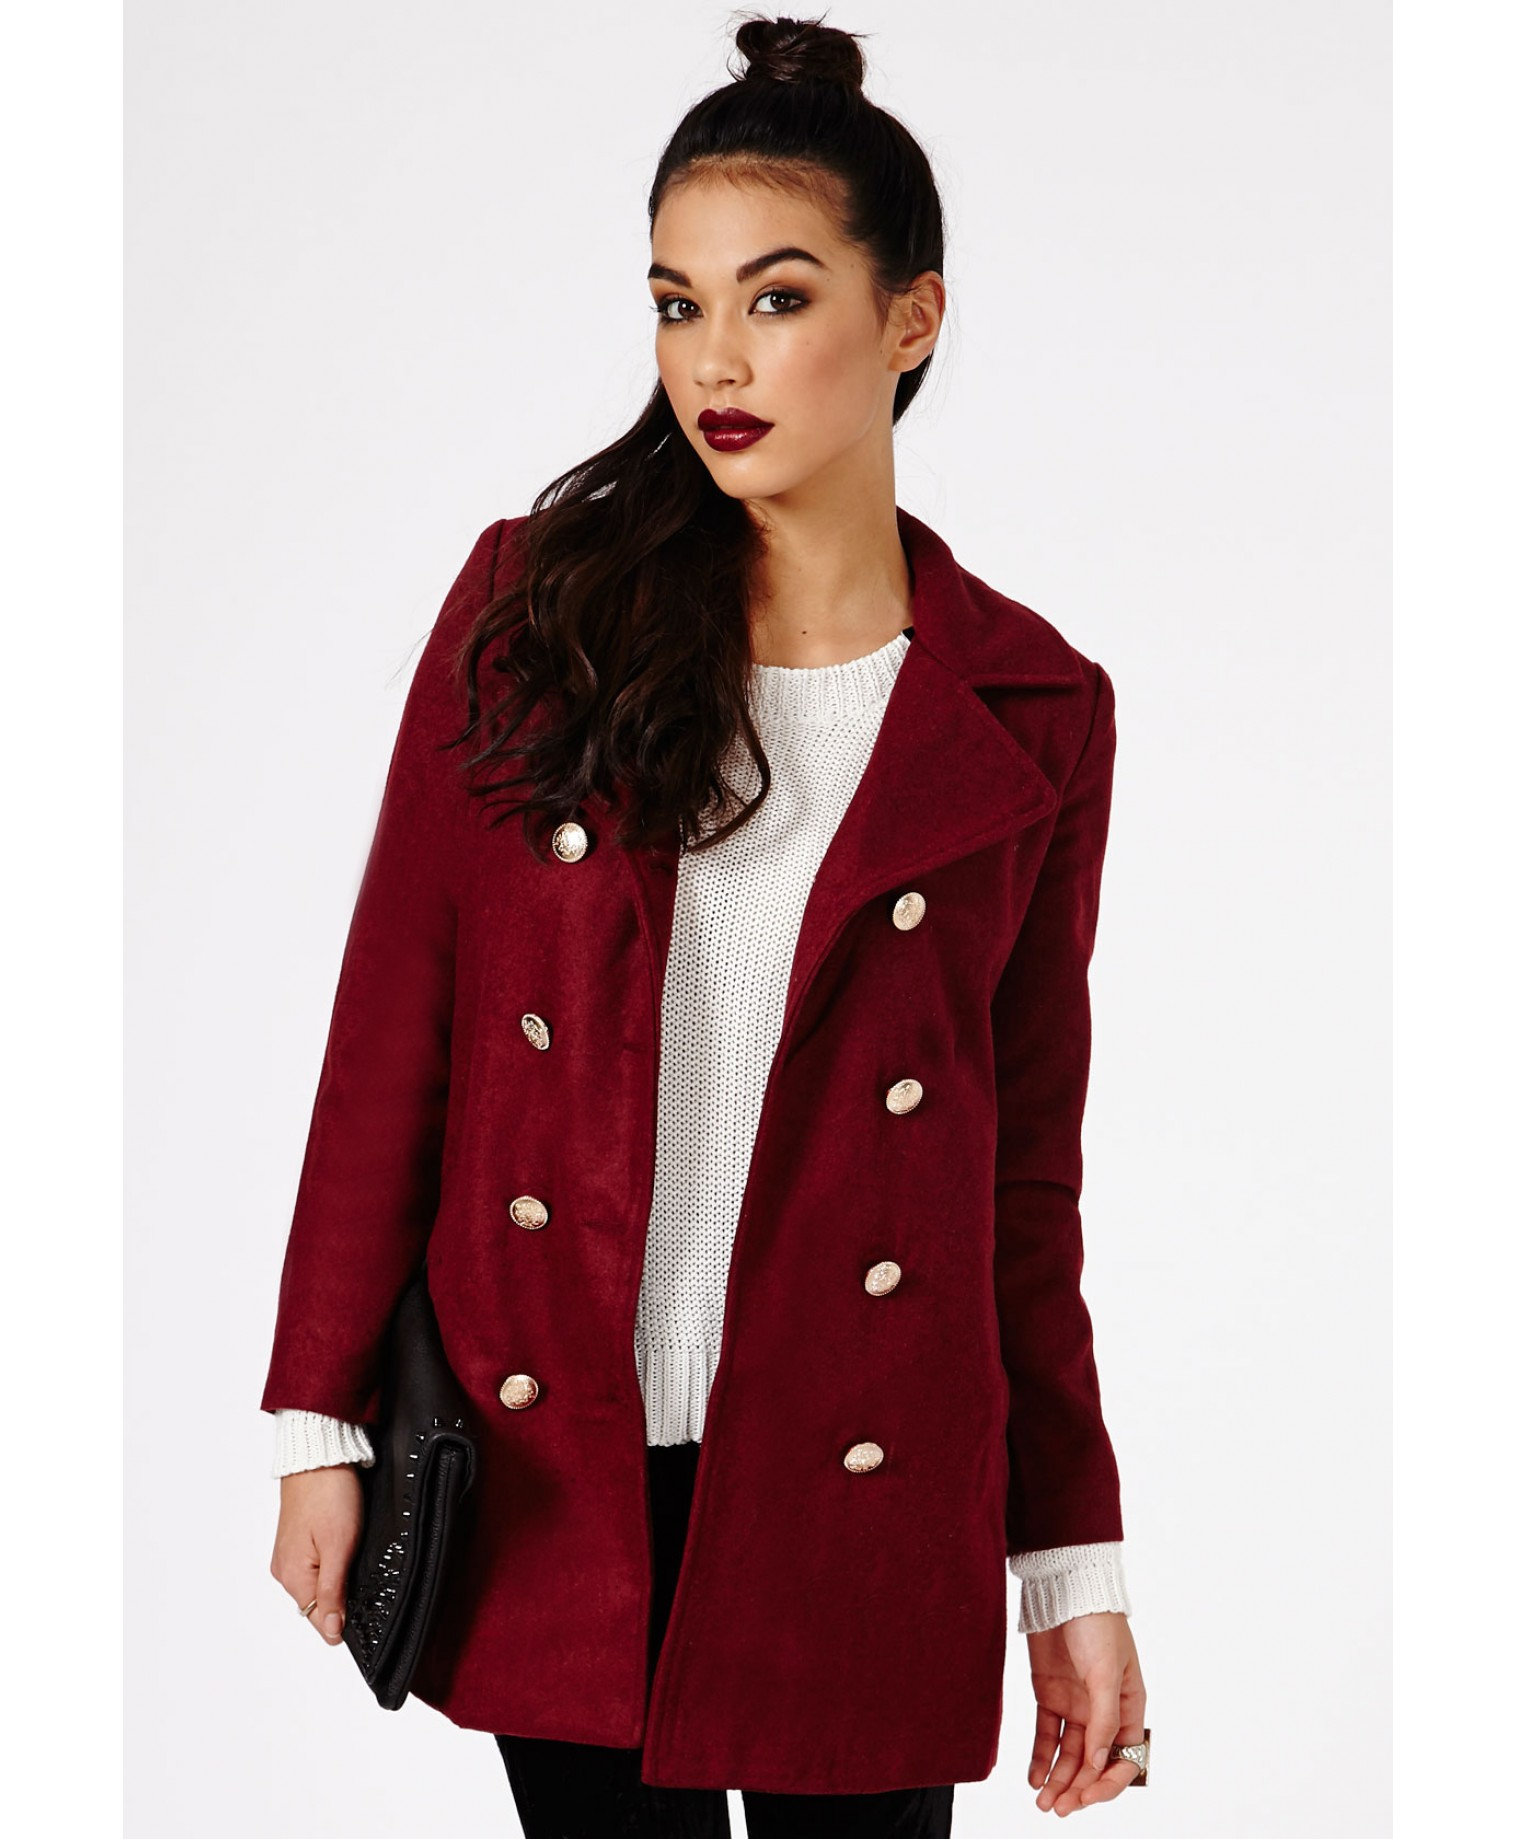 Missguided Kazumita Military Coat in Burgundy in Red | Lyst